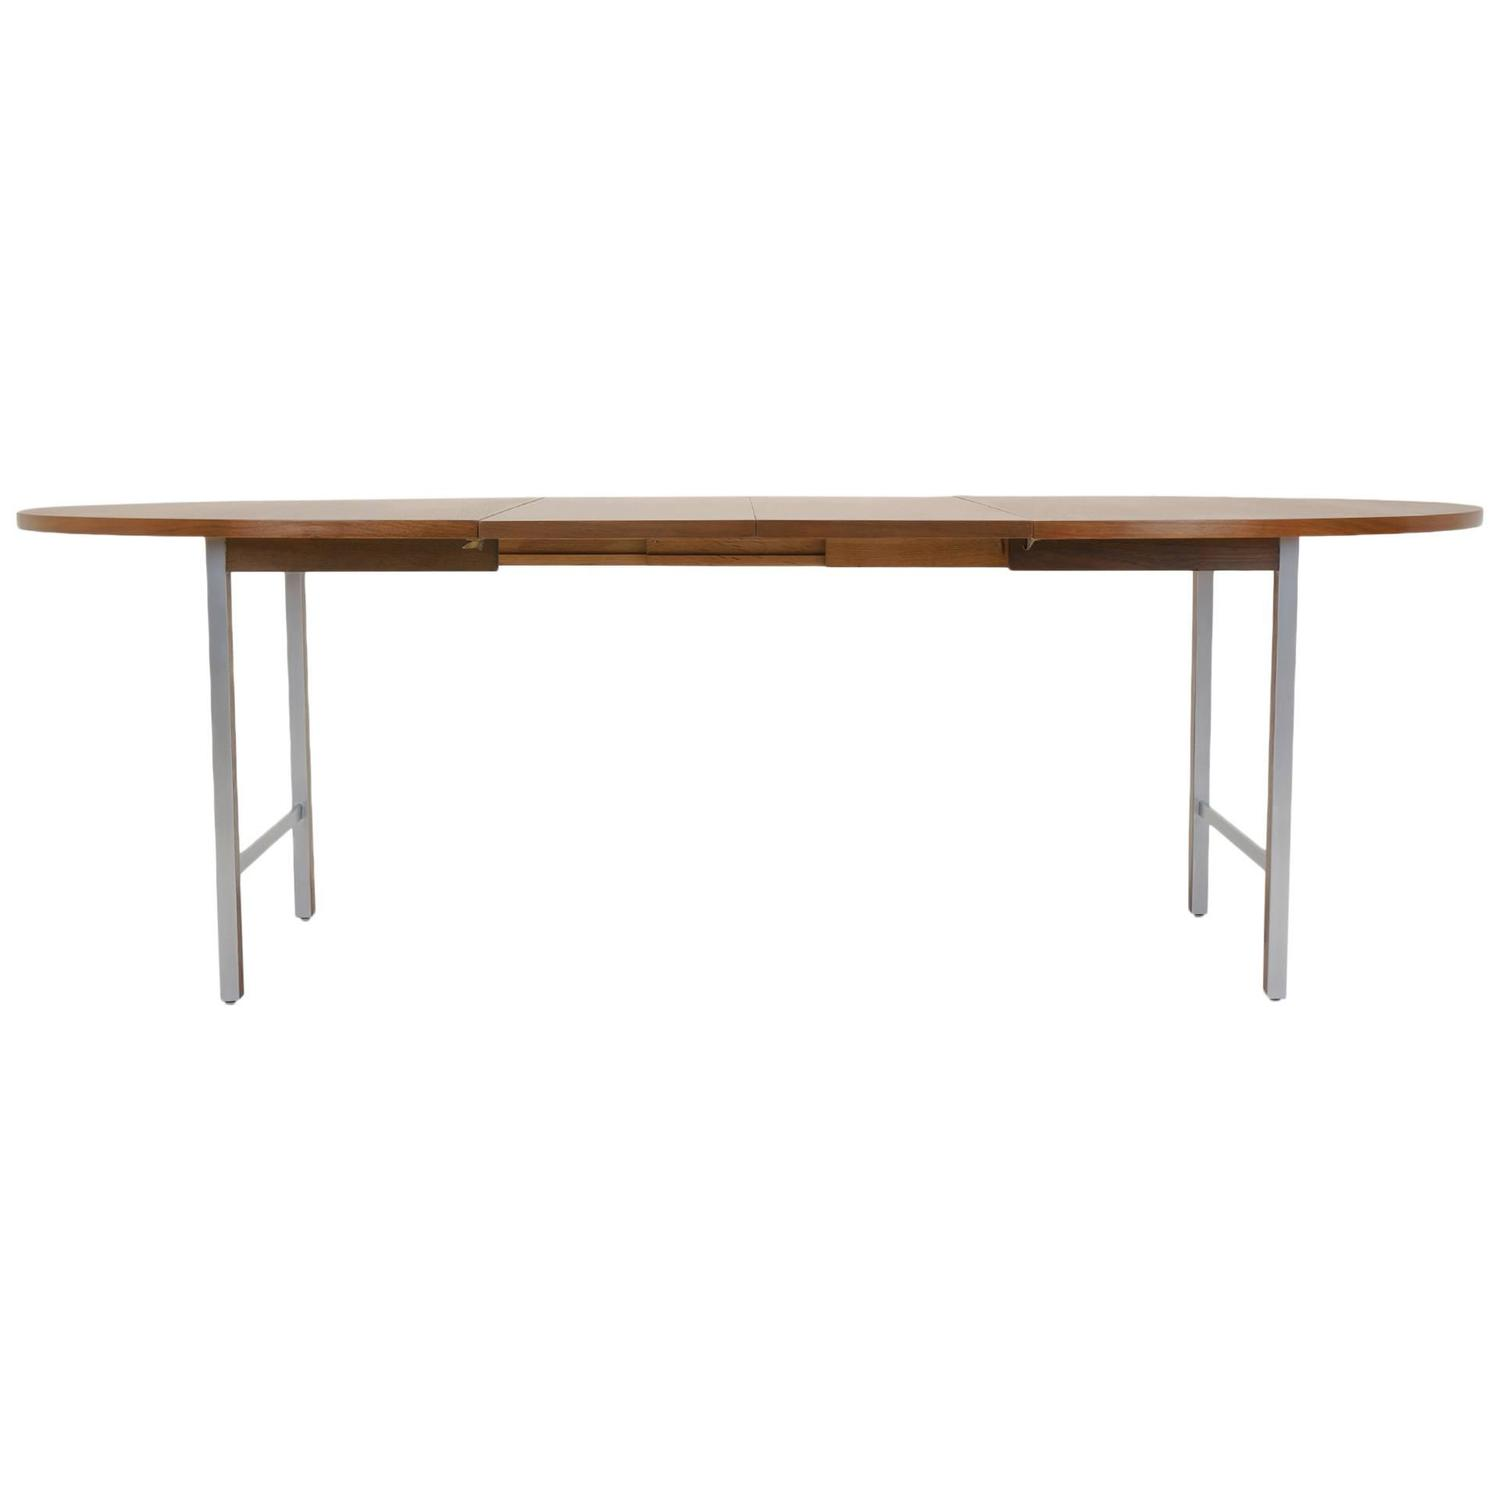 Paul McCobb Expandable Dining Table Rare Walnut And Brushed Steel At